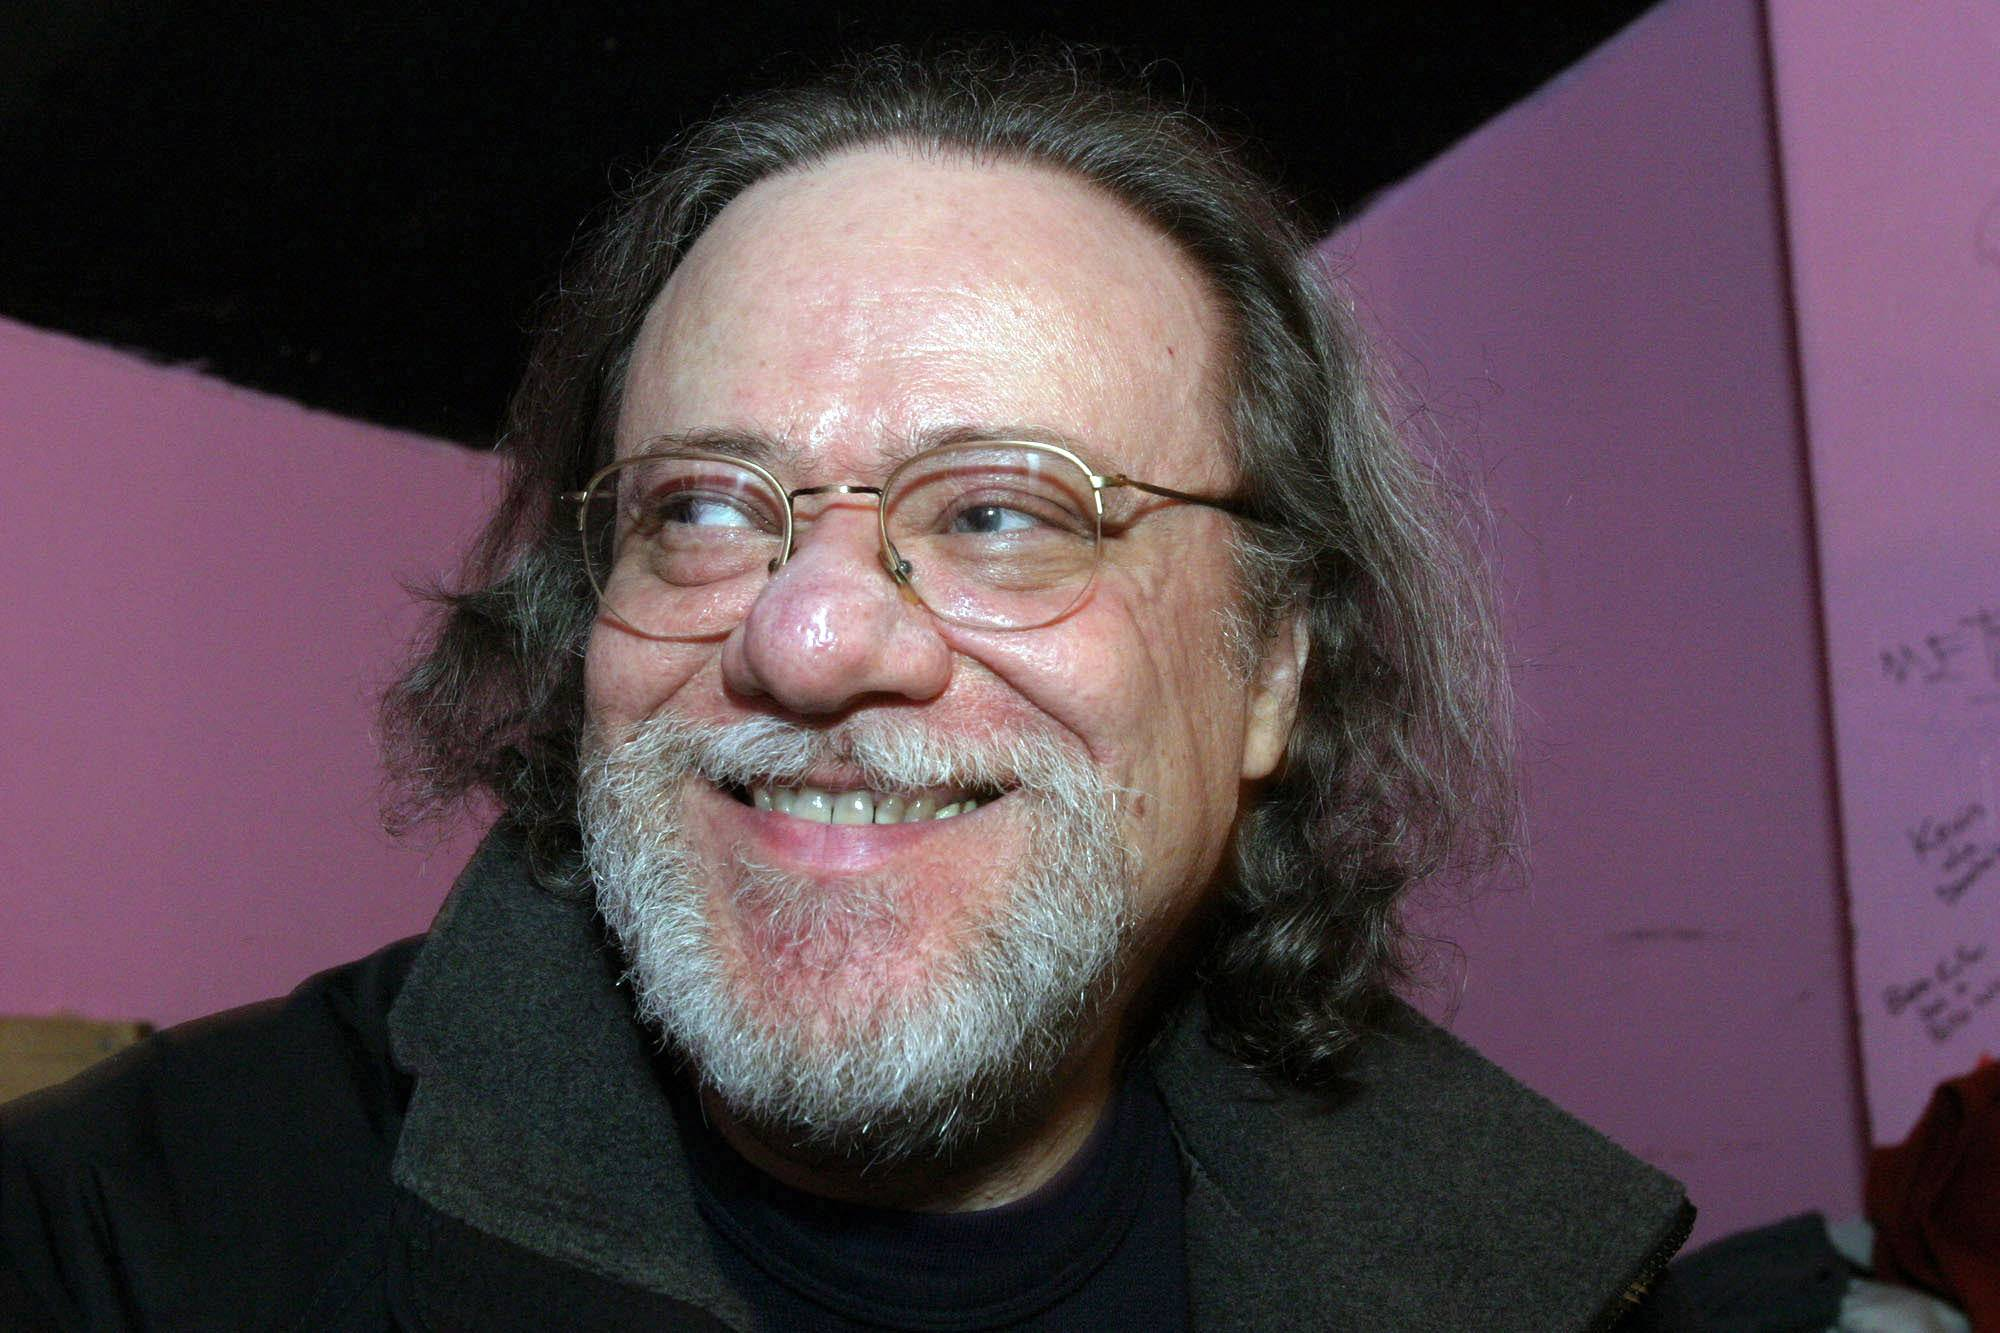 Tommy Ramone, ex-drummer and manager of The Ramones, smiles as he is interviewed backstage Jan. 8, 2005, at the Knitting Factory in New York. A business associate says Ramone, a co-founder of the seminal punk band The Ramones and the last surviving member of the original group, has died. Dave Frey, who works for Ramones Productions and Silent Partner Management, says Ramone's wife called to tell him he died on Friday, July 11.